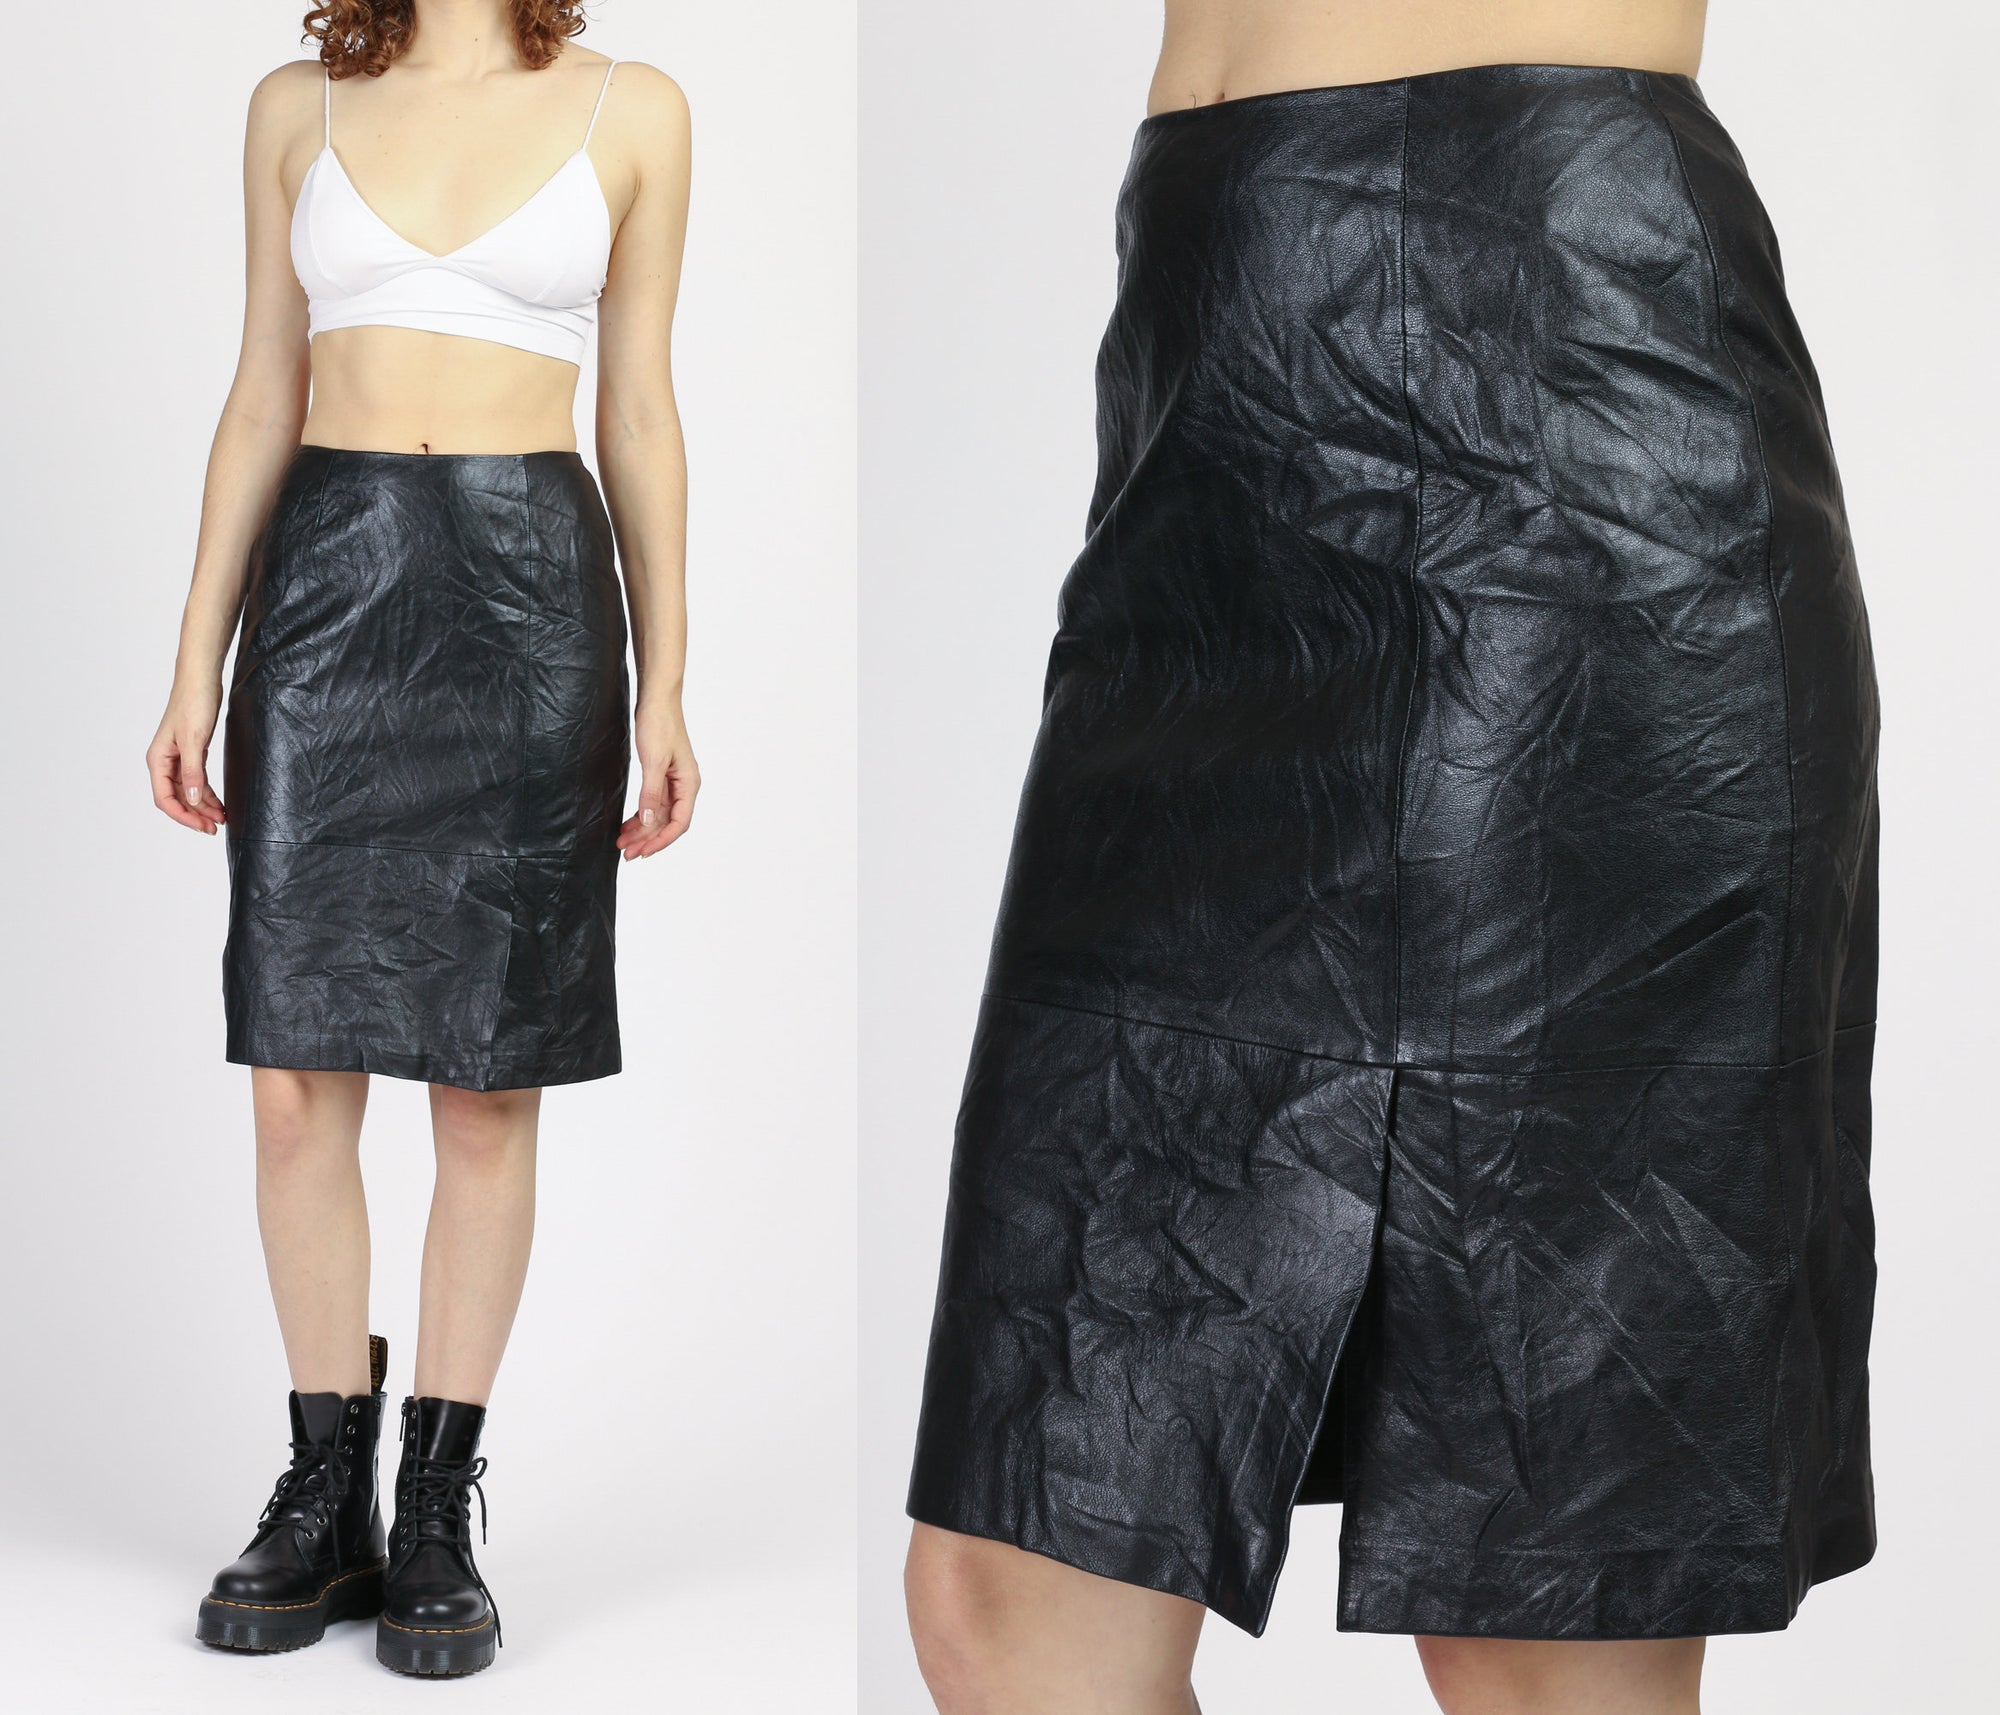 90s High Waist Black Leather Skirt - Small